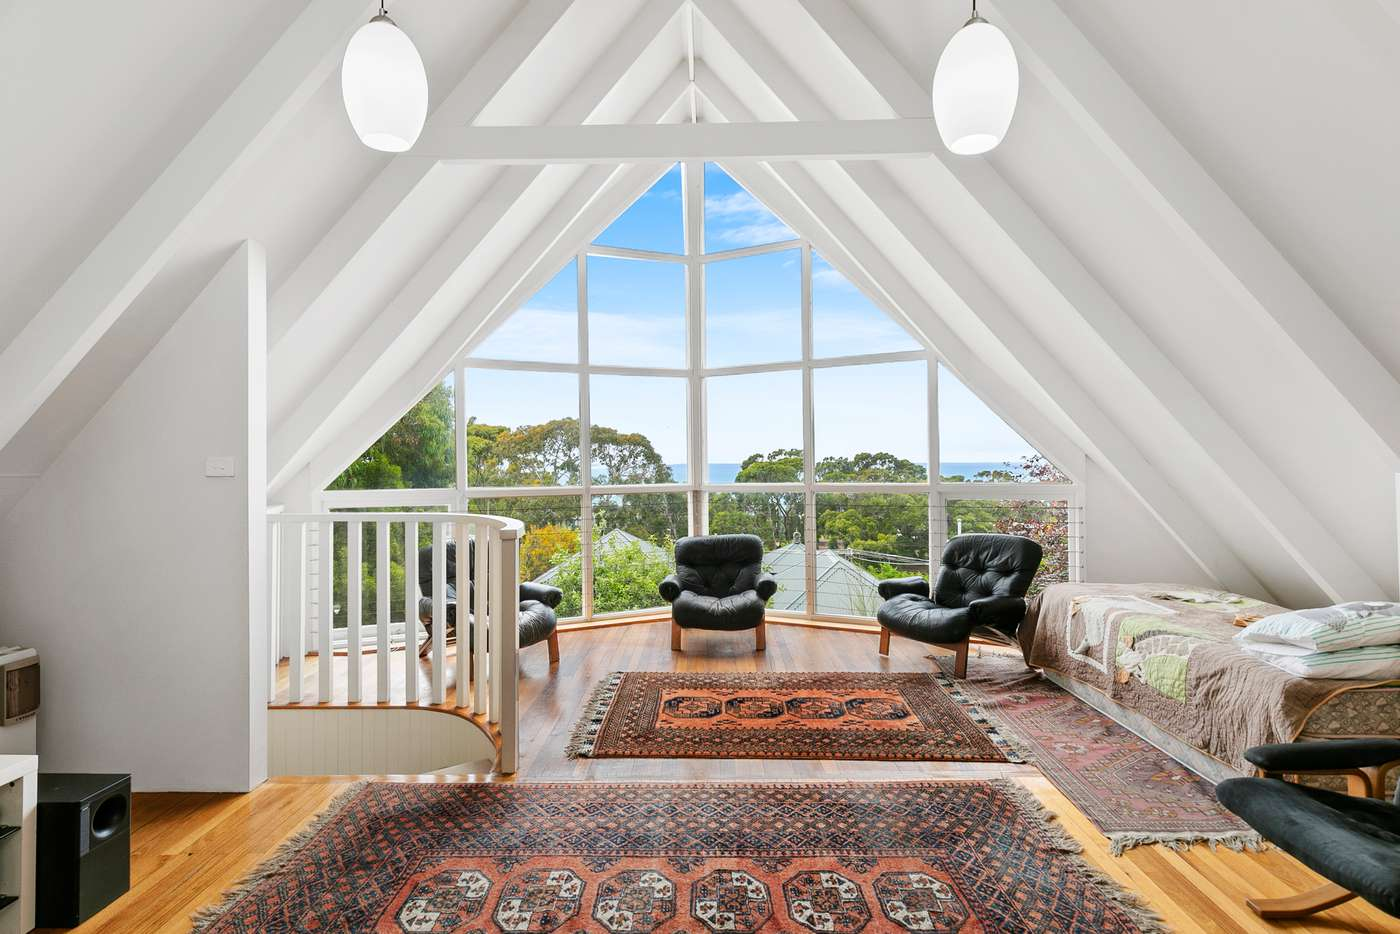 Main view of Homely house listing, 53 Polwarth Road, Lorne VIC 3232